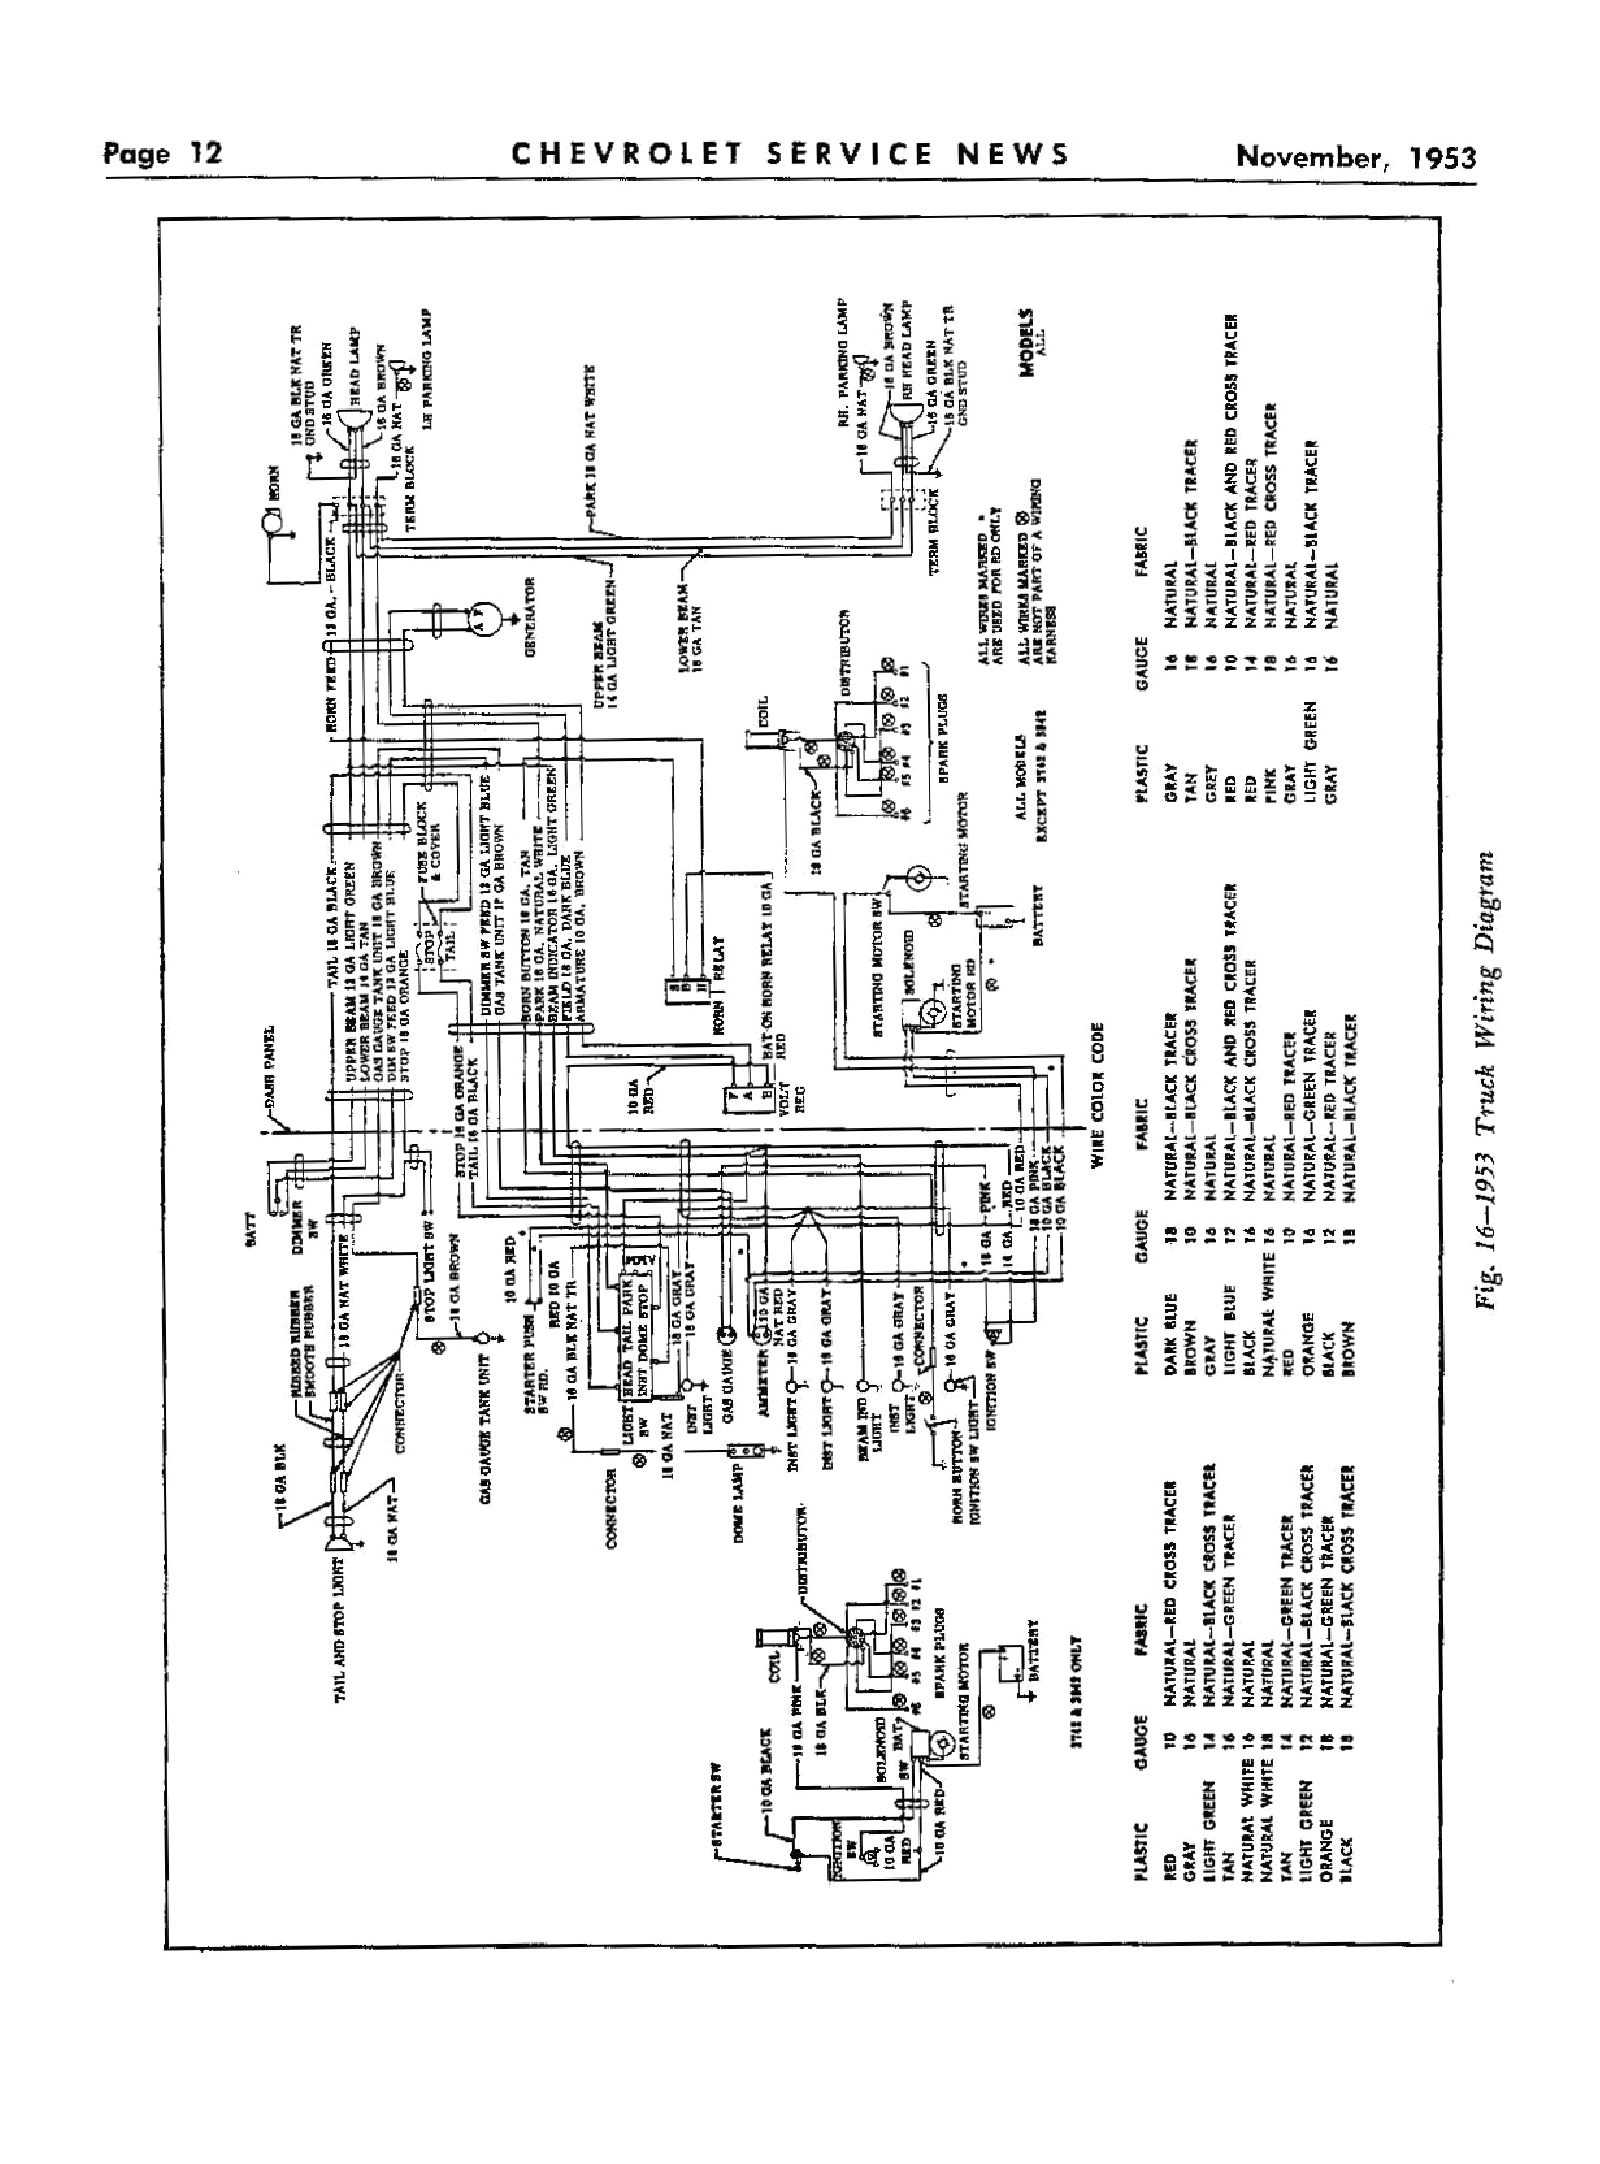 Wire Diagrams For 1939 Chevy Wiring Diagram